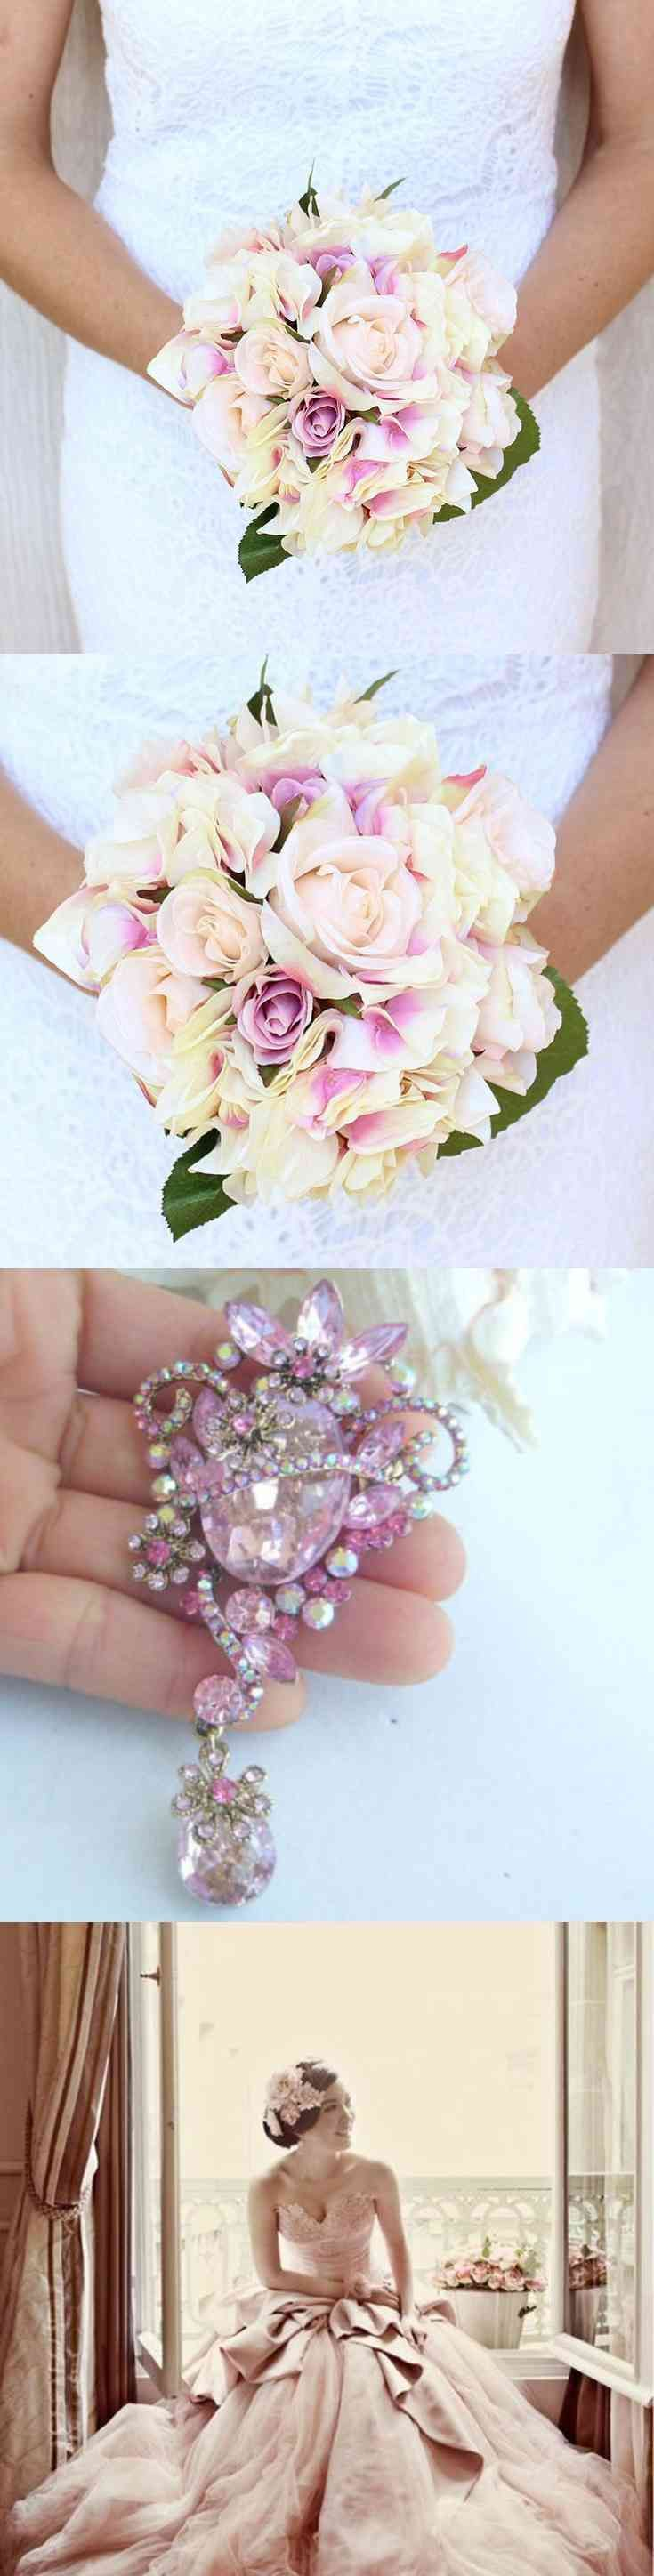 Wedding Bouquet, Bridal, Wedding Flowers, Silk flowers hand made, Bohemian Sash, Hairpiece, Hair Accesory, Brooches, Flower Crown brooch  Antique Rose Bouquet Sherbet   Thank you (via pushapin.com)